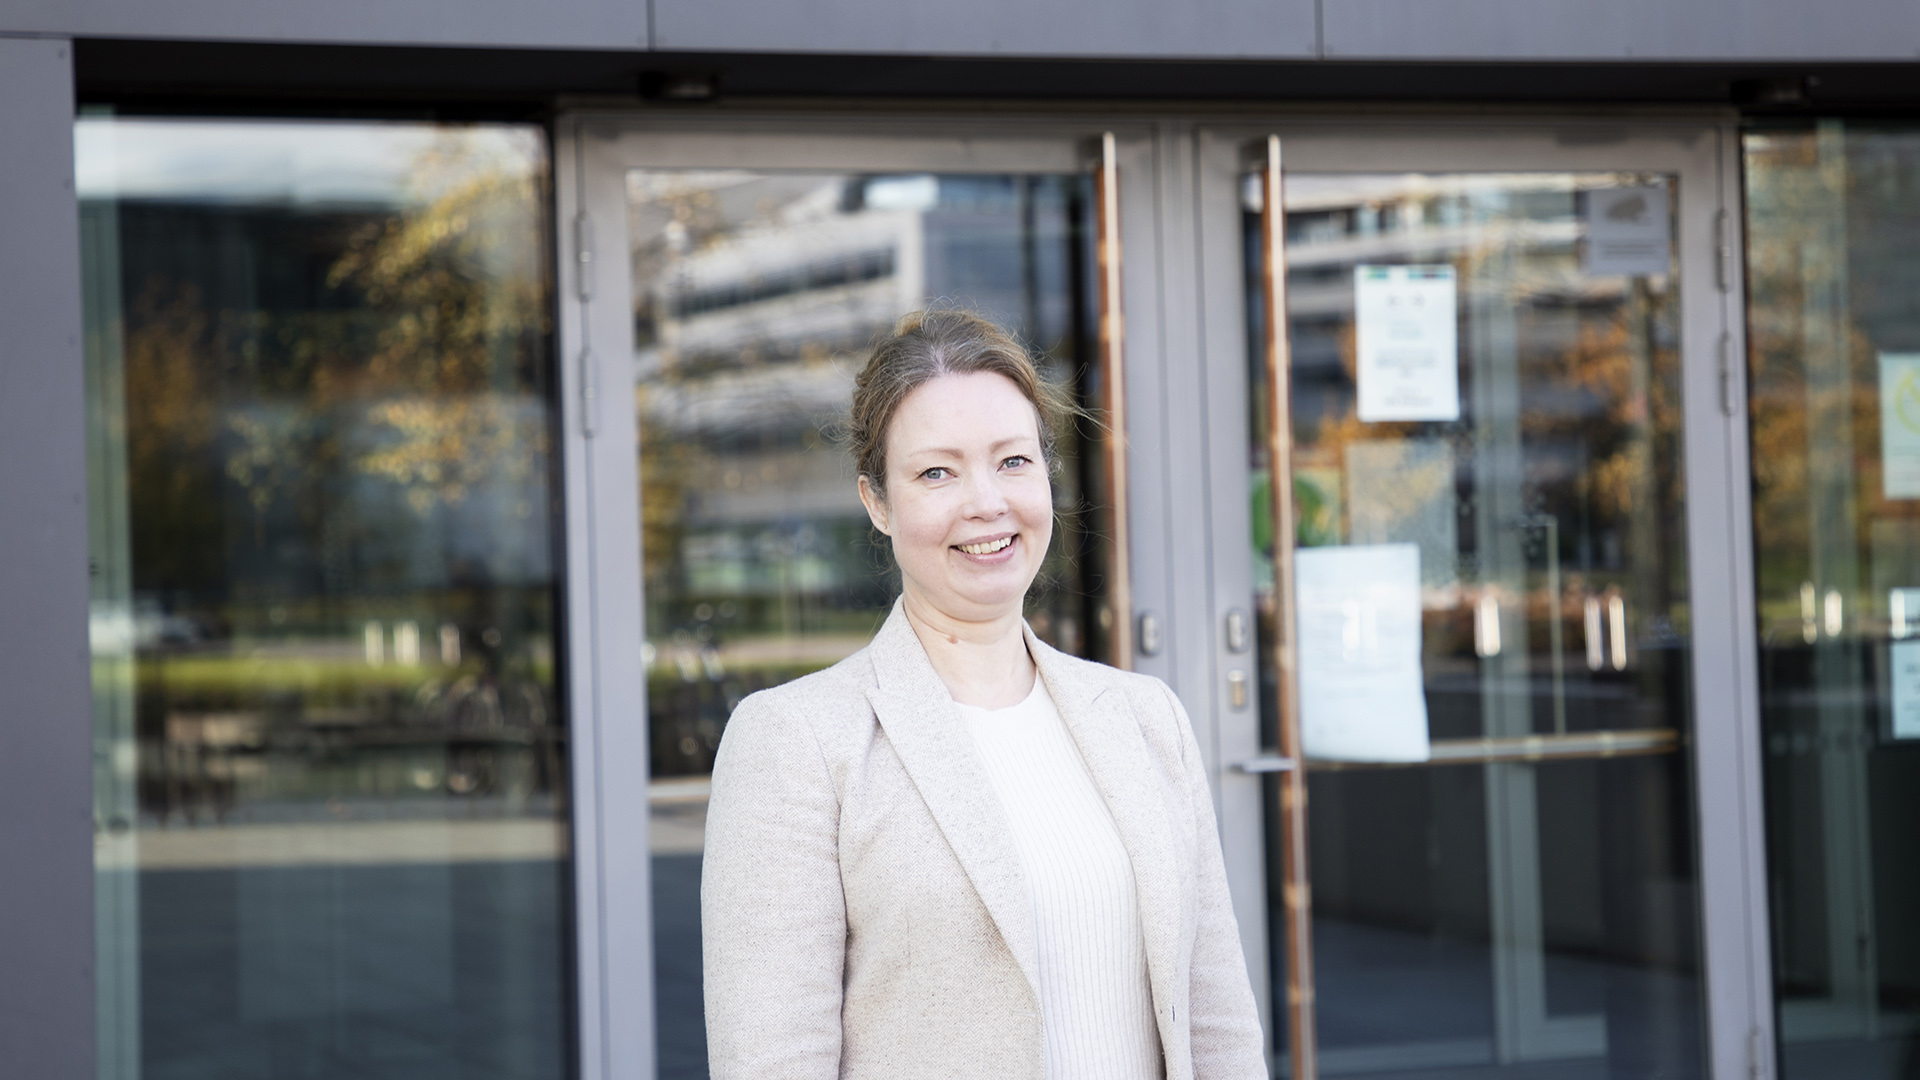 Tanja Johansson stands outside of the Sibelius Academy's main entrance at Helsinki Music Centre